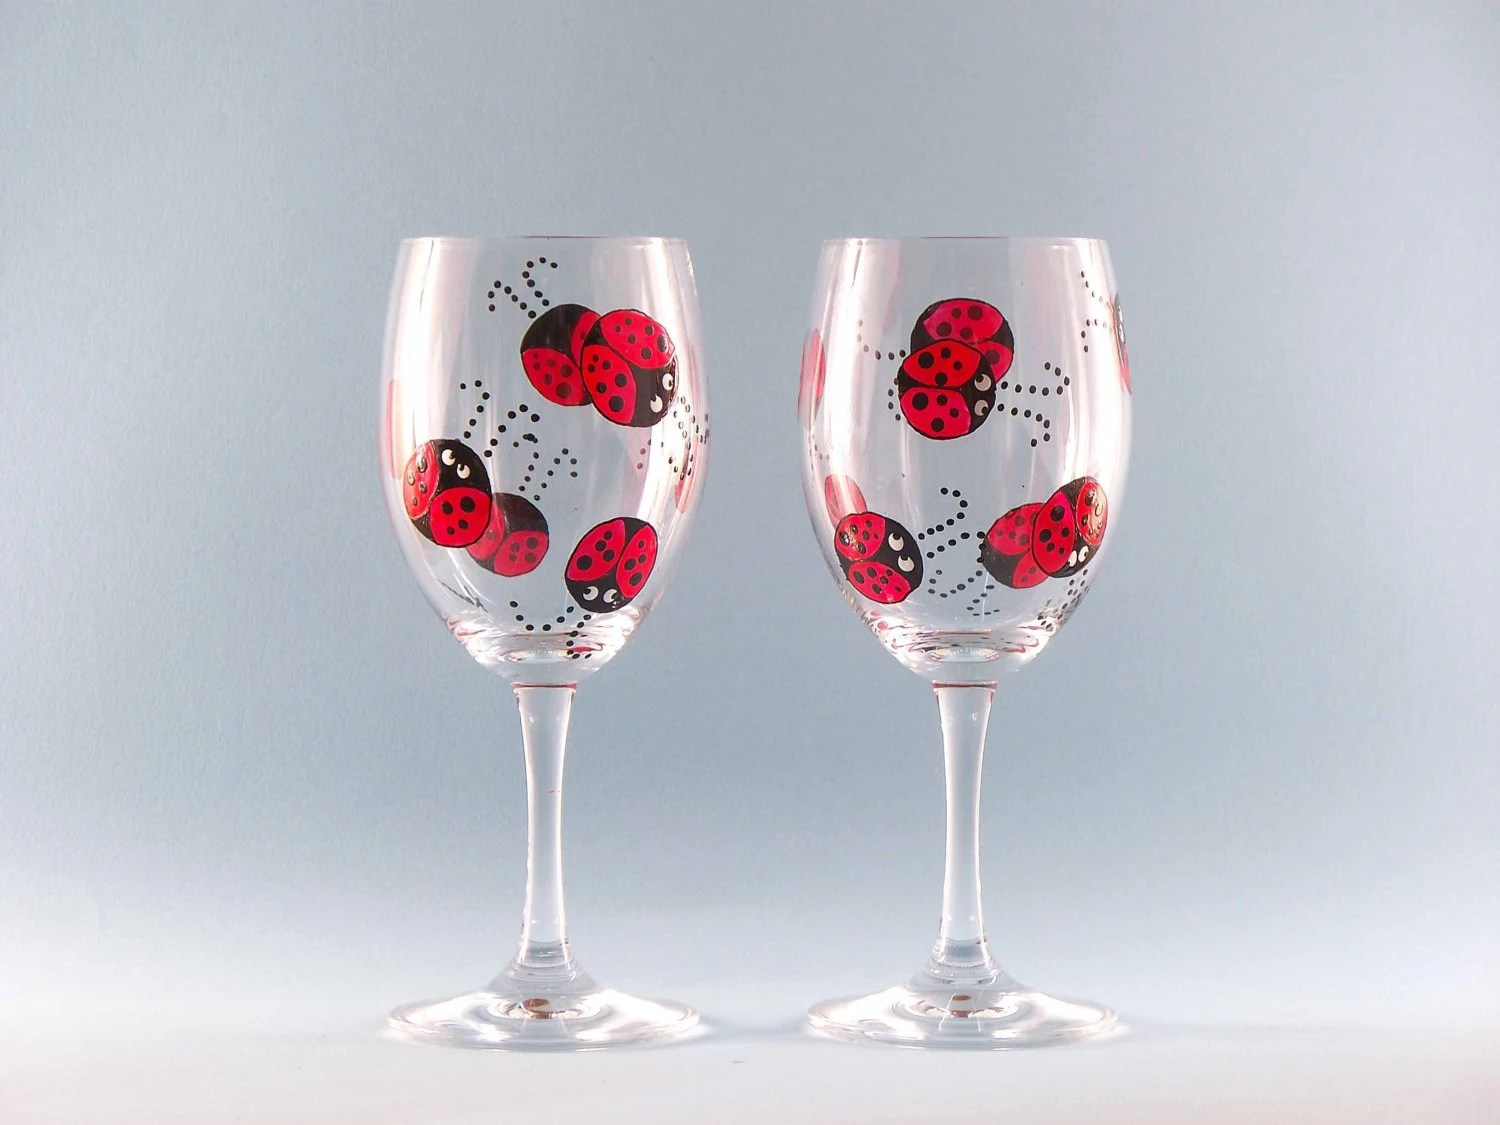 Cute Glassware Hand Painted Ladybug Wine Glasses Cute Ladybug Design